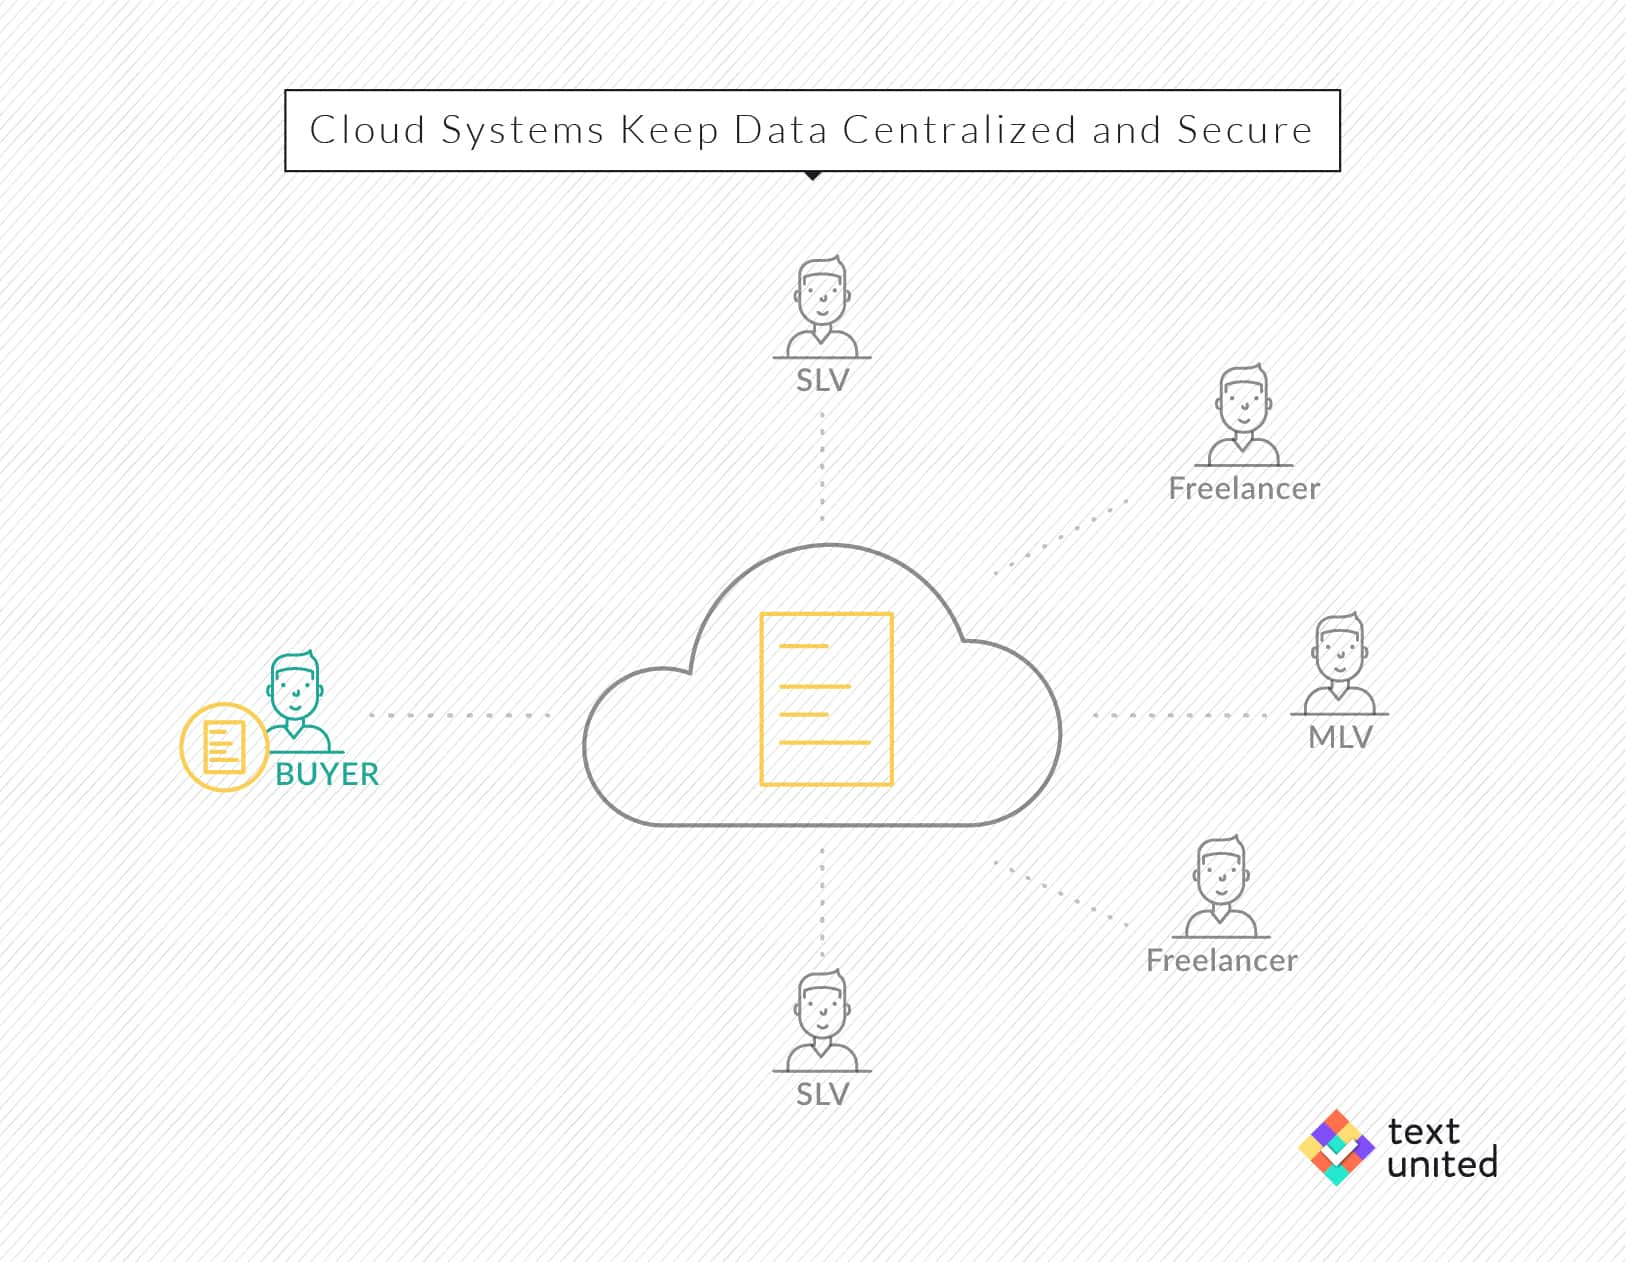 cloud.systems